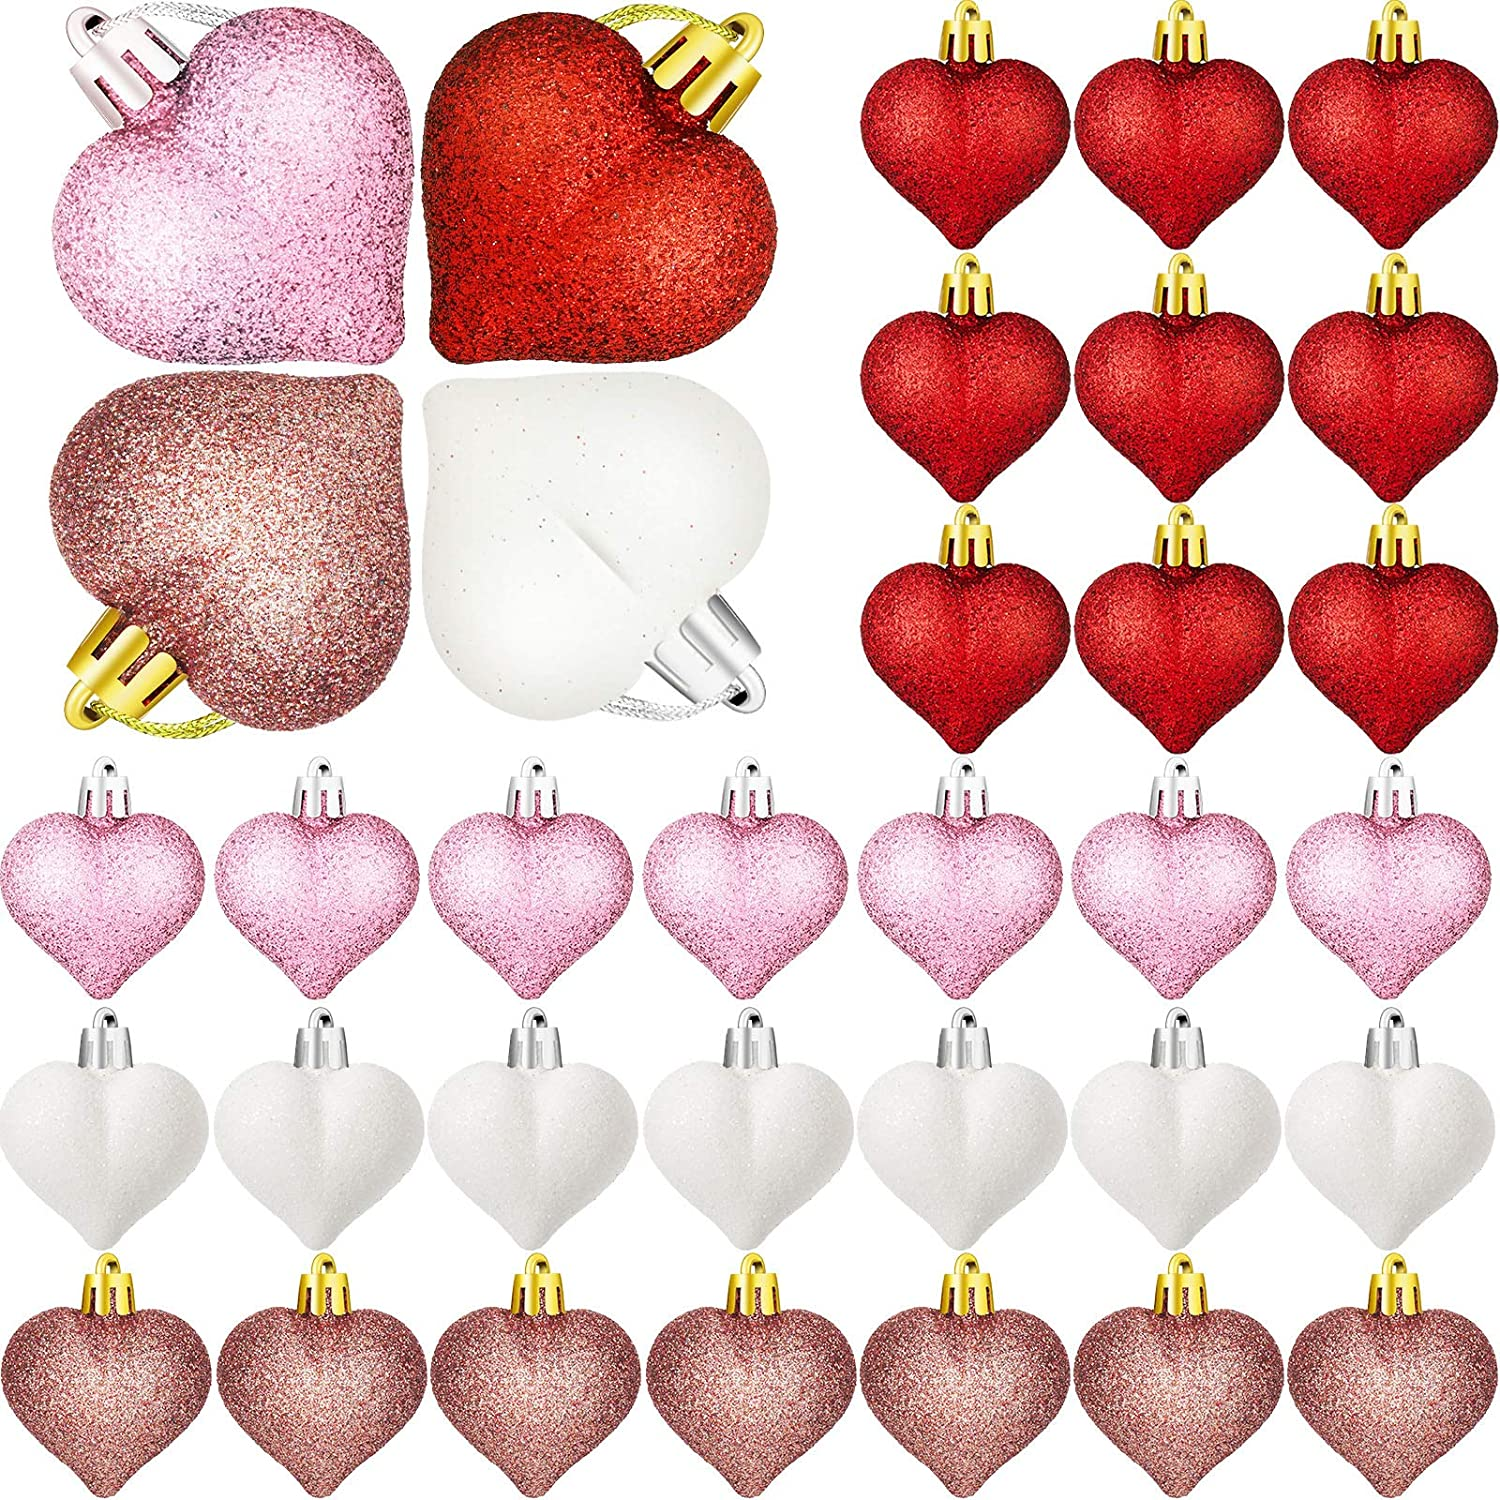 36 Pieces Glitter Heart Shaped Hanging Ornaments Colorful Heart Shaped Baubles Valentine's Day Heart Ornaments Christmas Tree Plastic Heart Baubles for Valentine's Day Wedding Anniversary Decor